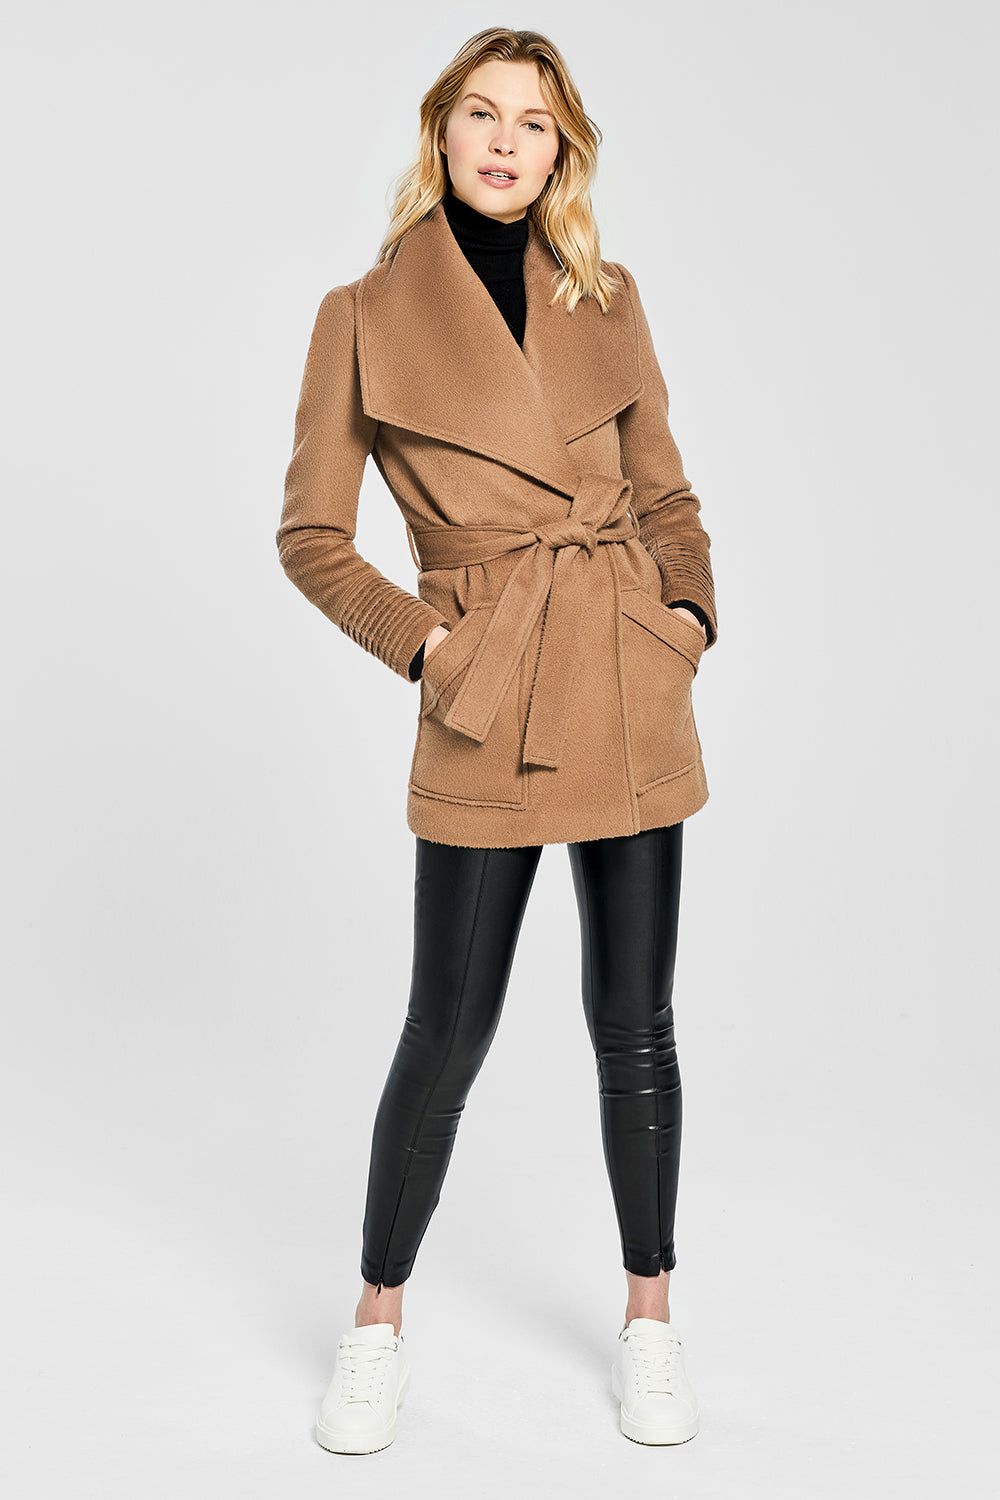 Sentaler Cropped Wide Collar Wrap Coat featured in Baby Alpaca and available in Dark Camel. Seen from front.